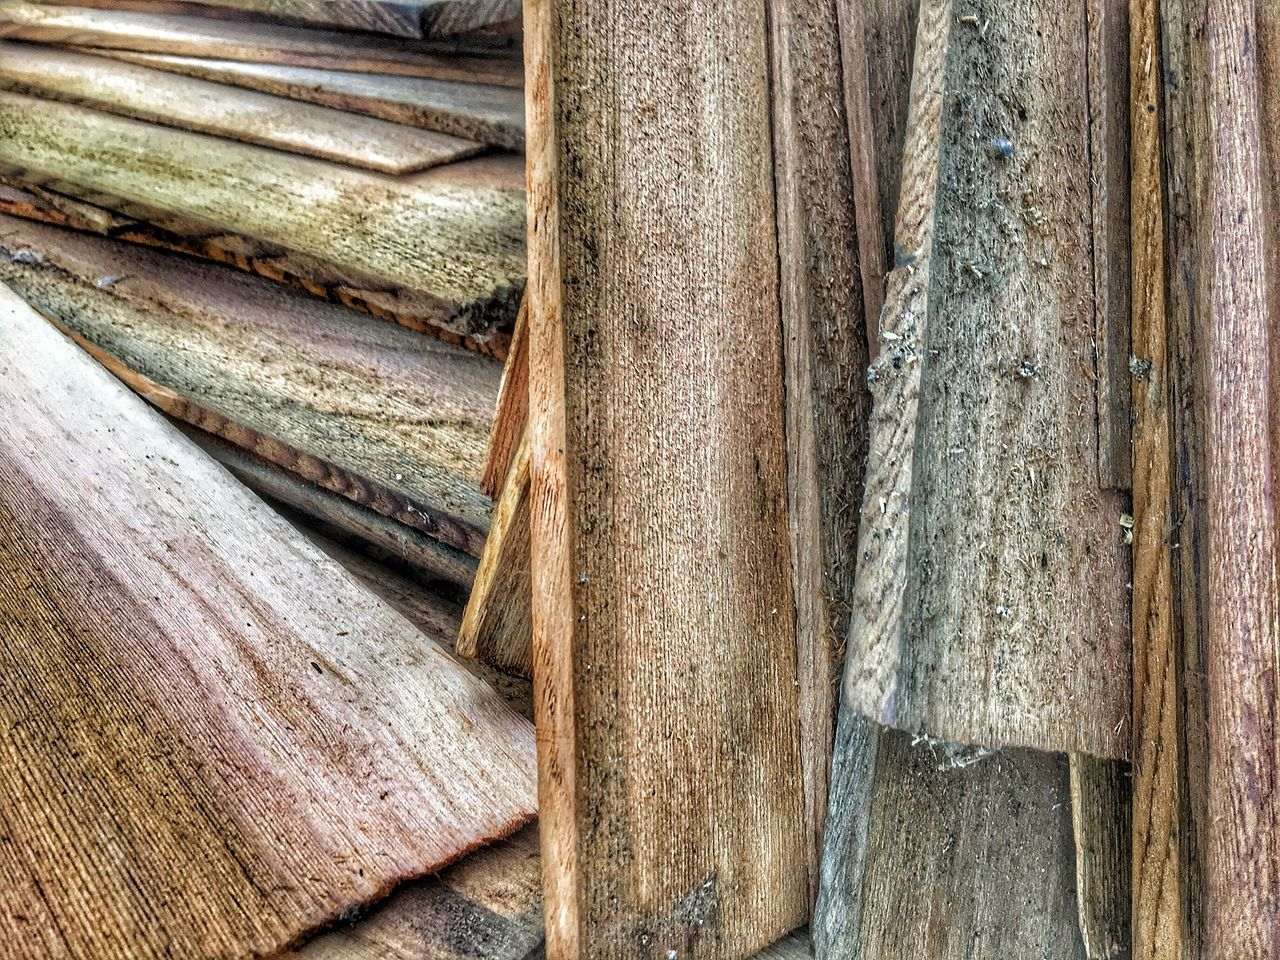 Outdoors Day Wood - Material Full Frame No People Close-up Textured  Backgrounds Nature Used Shingles